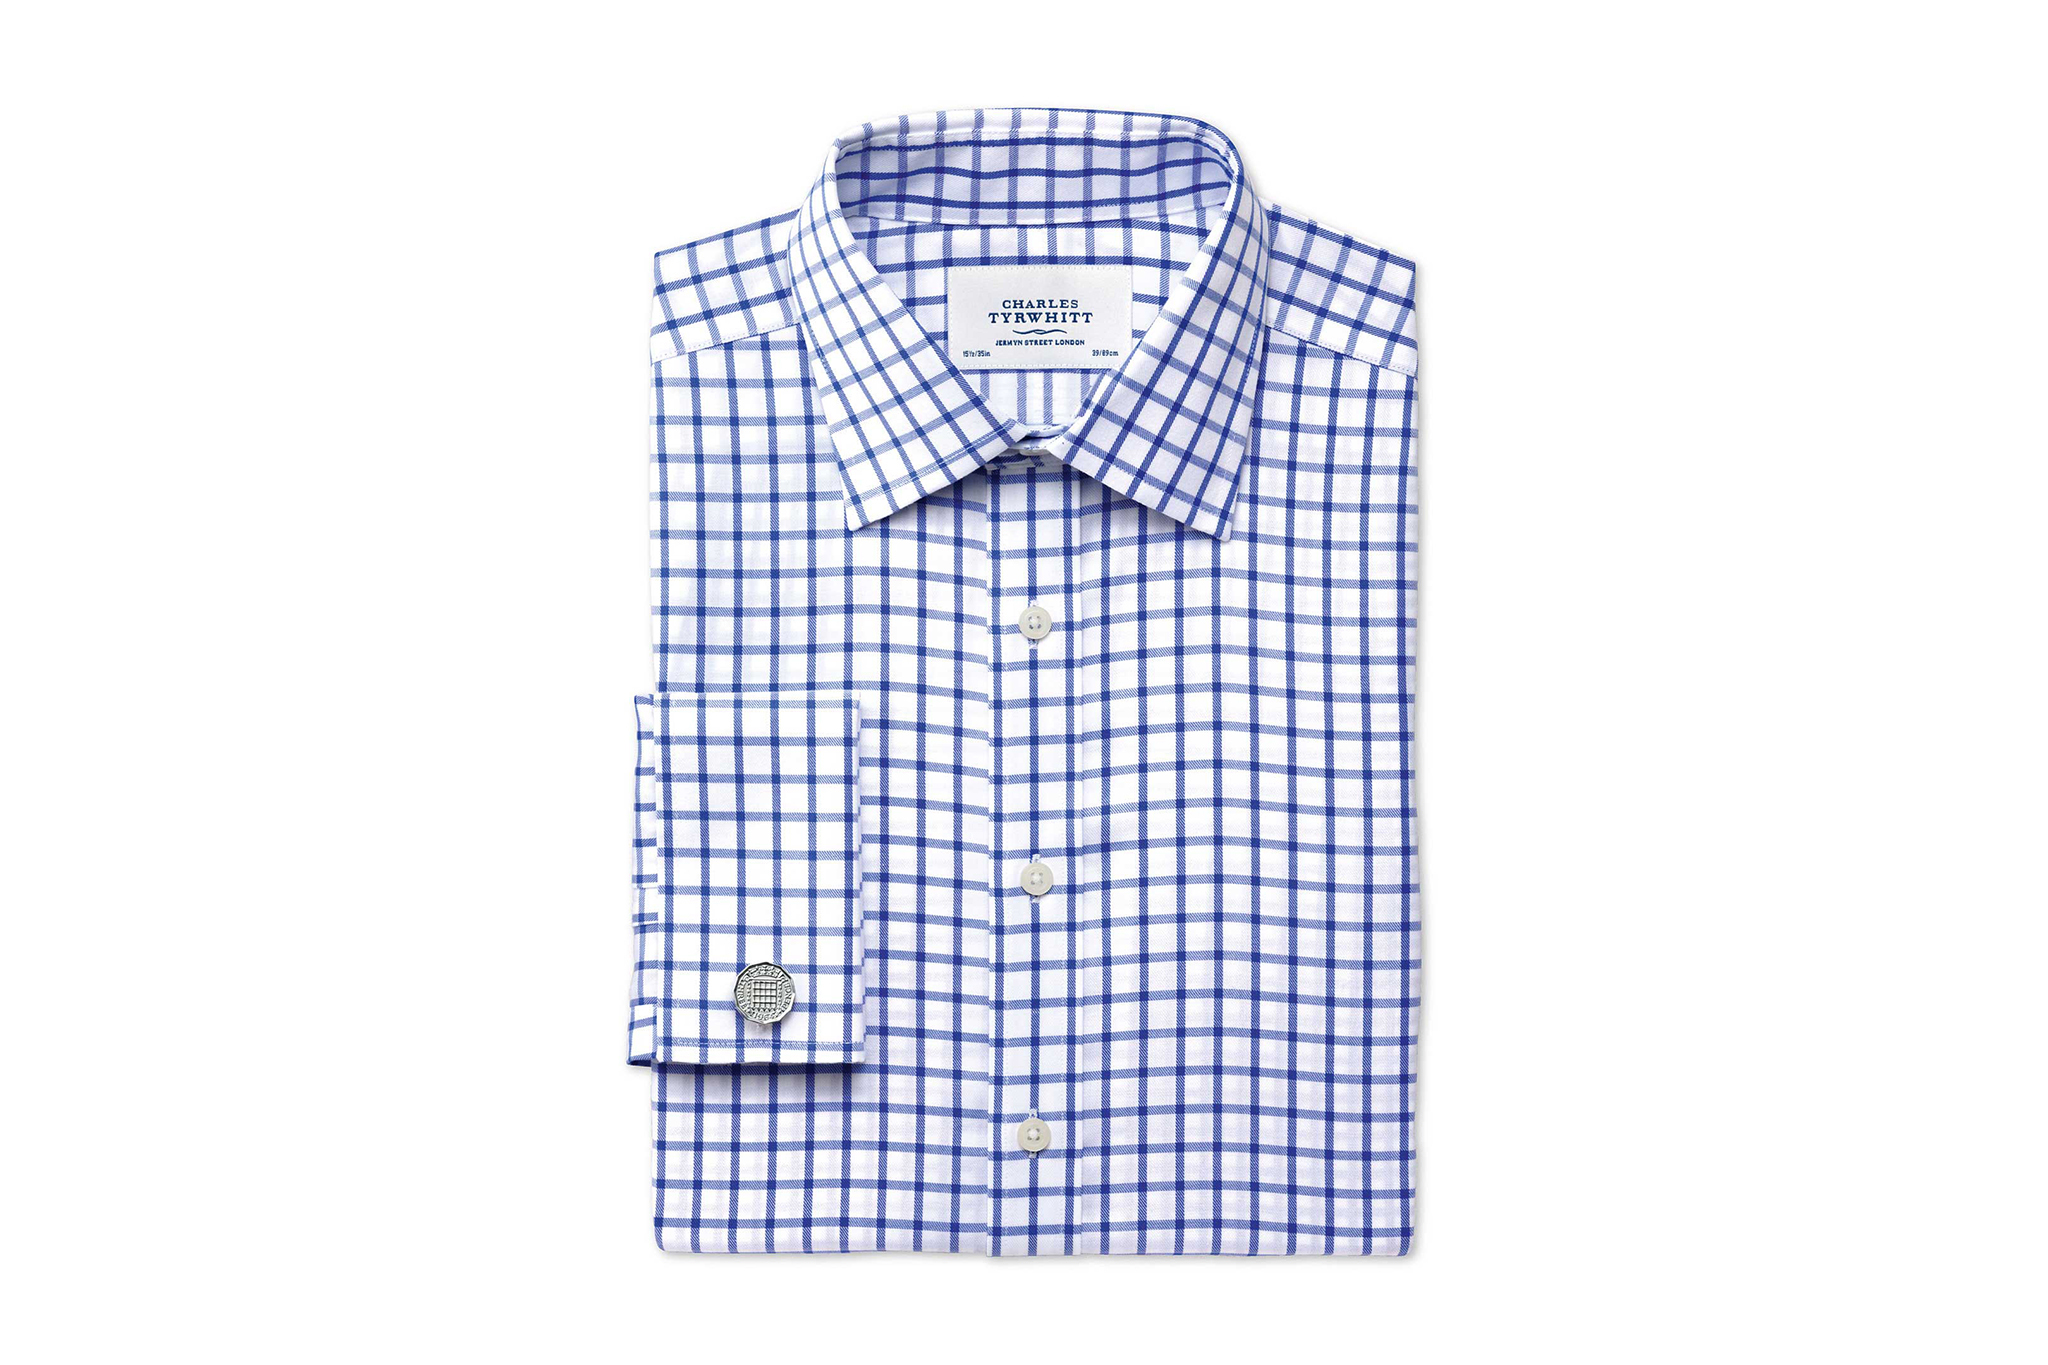 Charles Tyrwhitt no-iron checked blue button-down